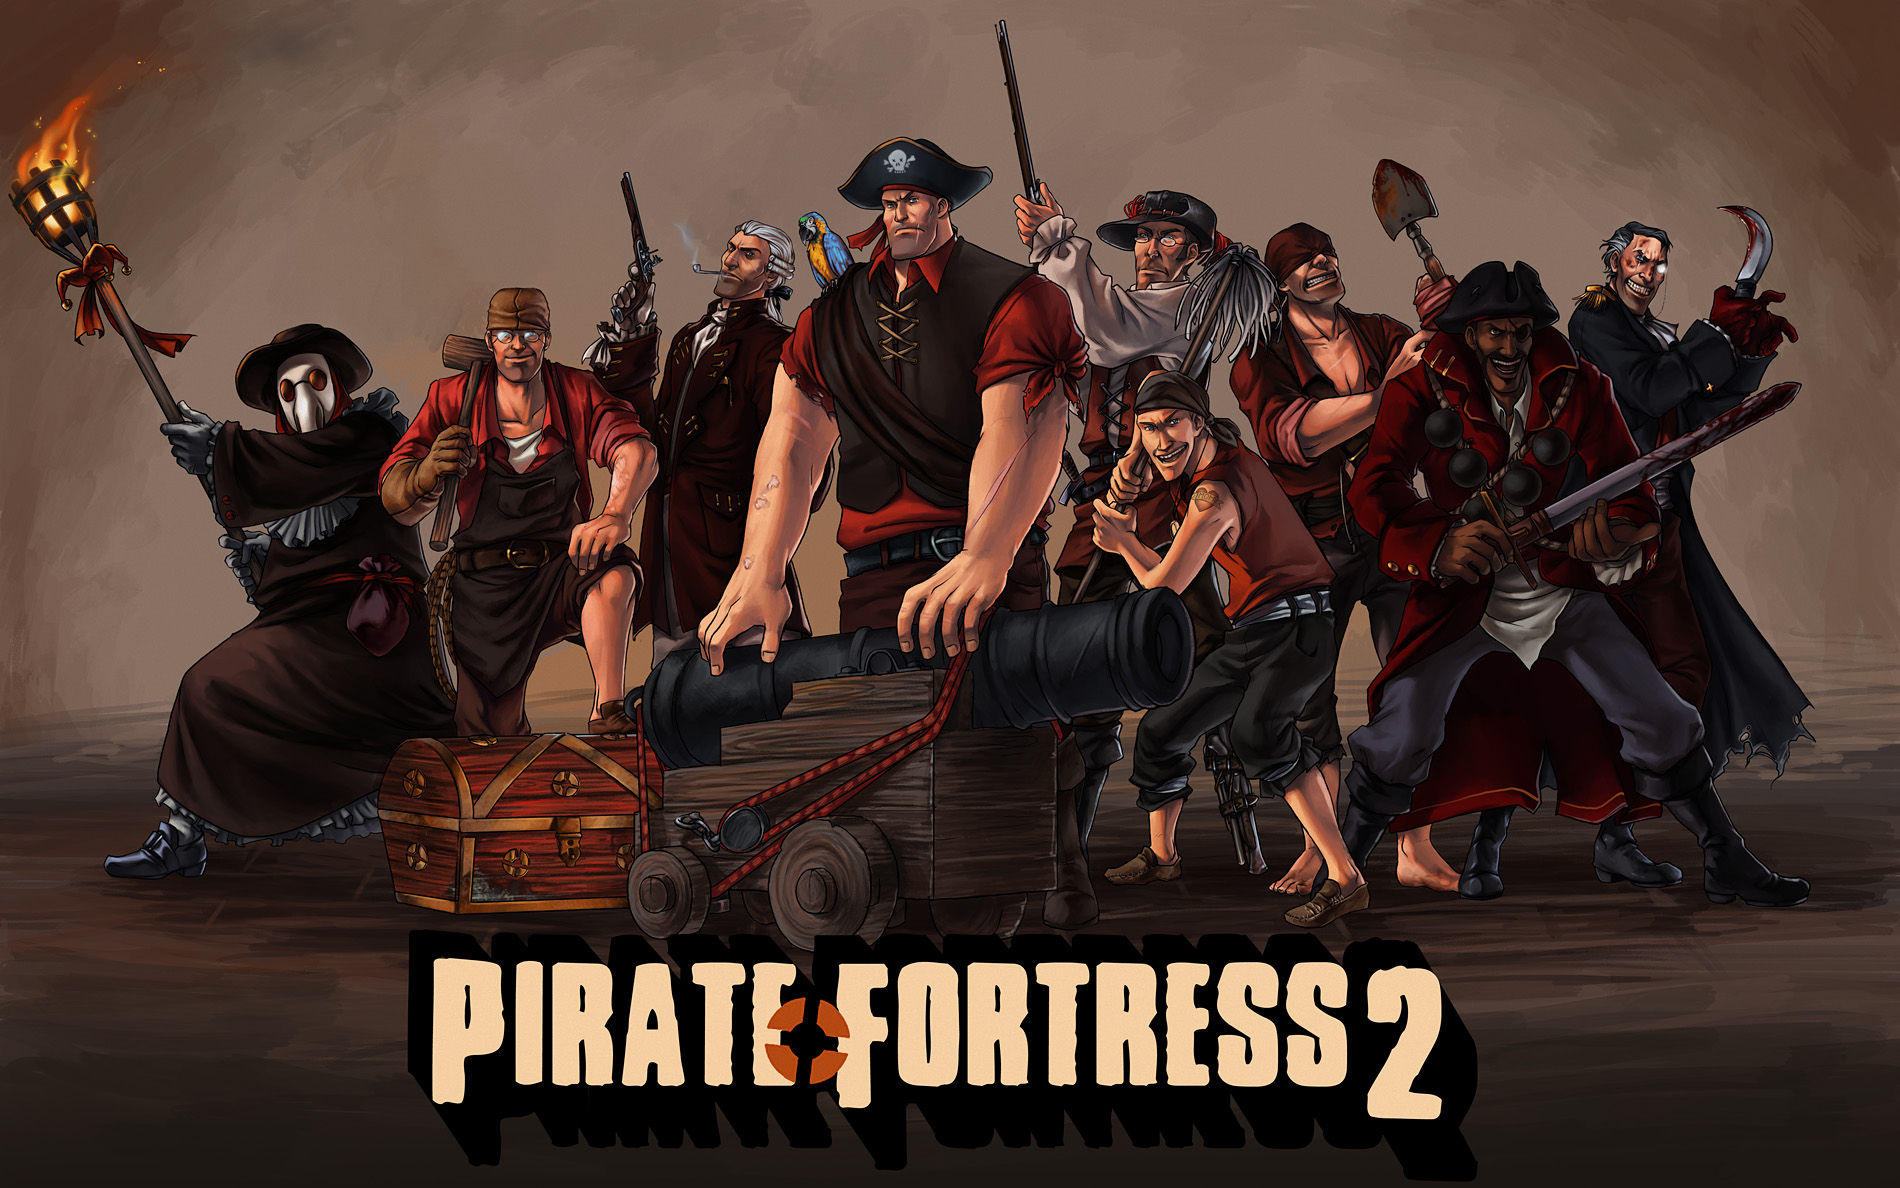 Pirate Fortress 2 | Team Fortress 2 | Know Your Meme